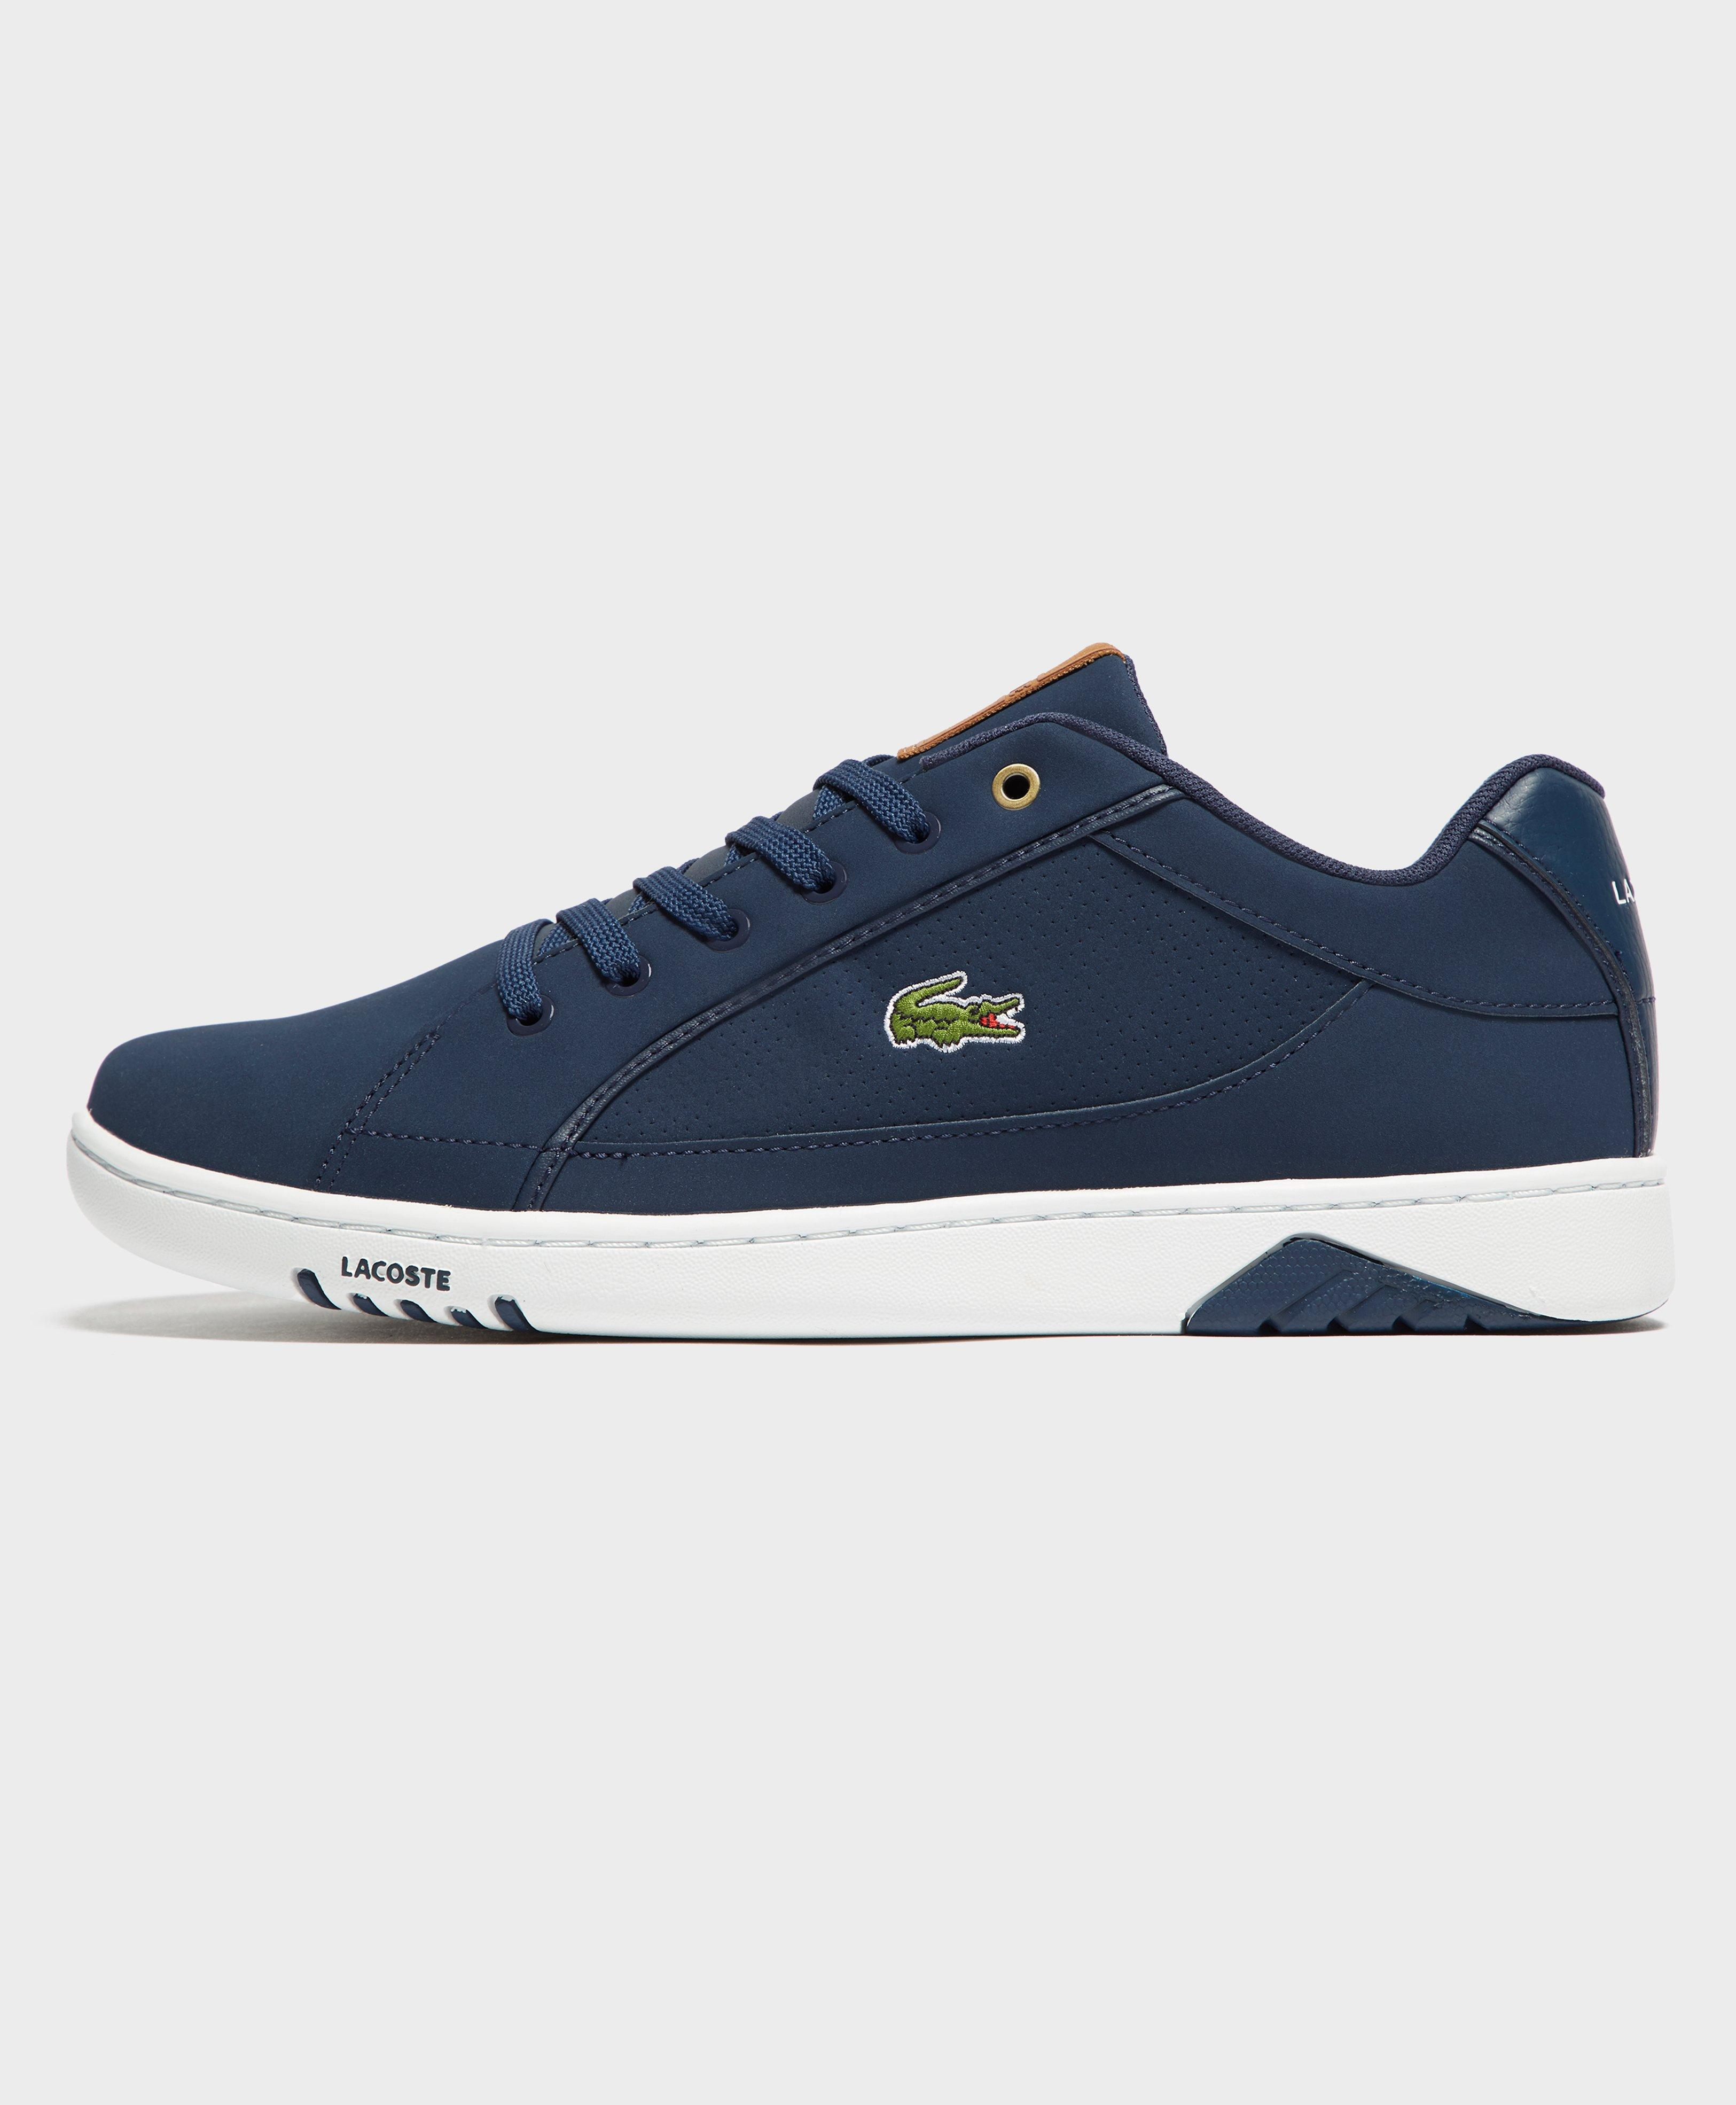 7e4dd324d1f08 Lyst - Lacoste Deviation Ii in Blue for Men - Save 60.416666666666664%